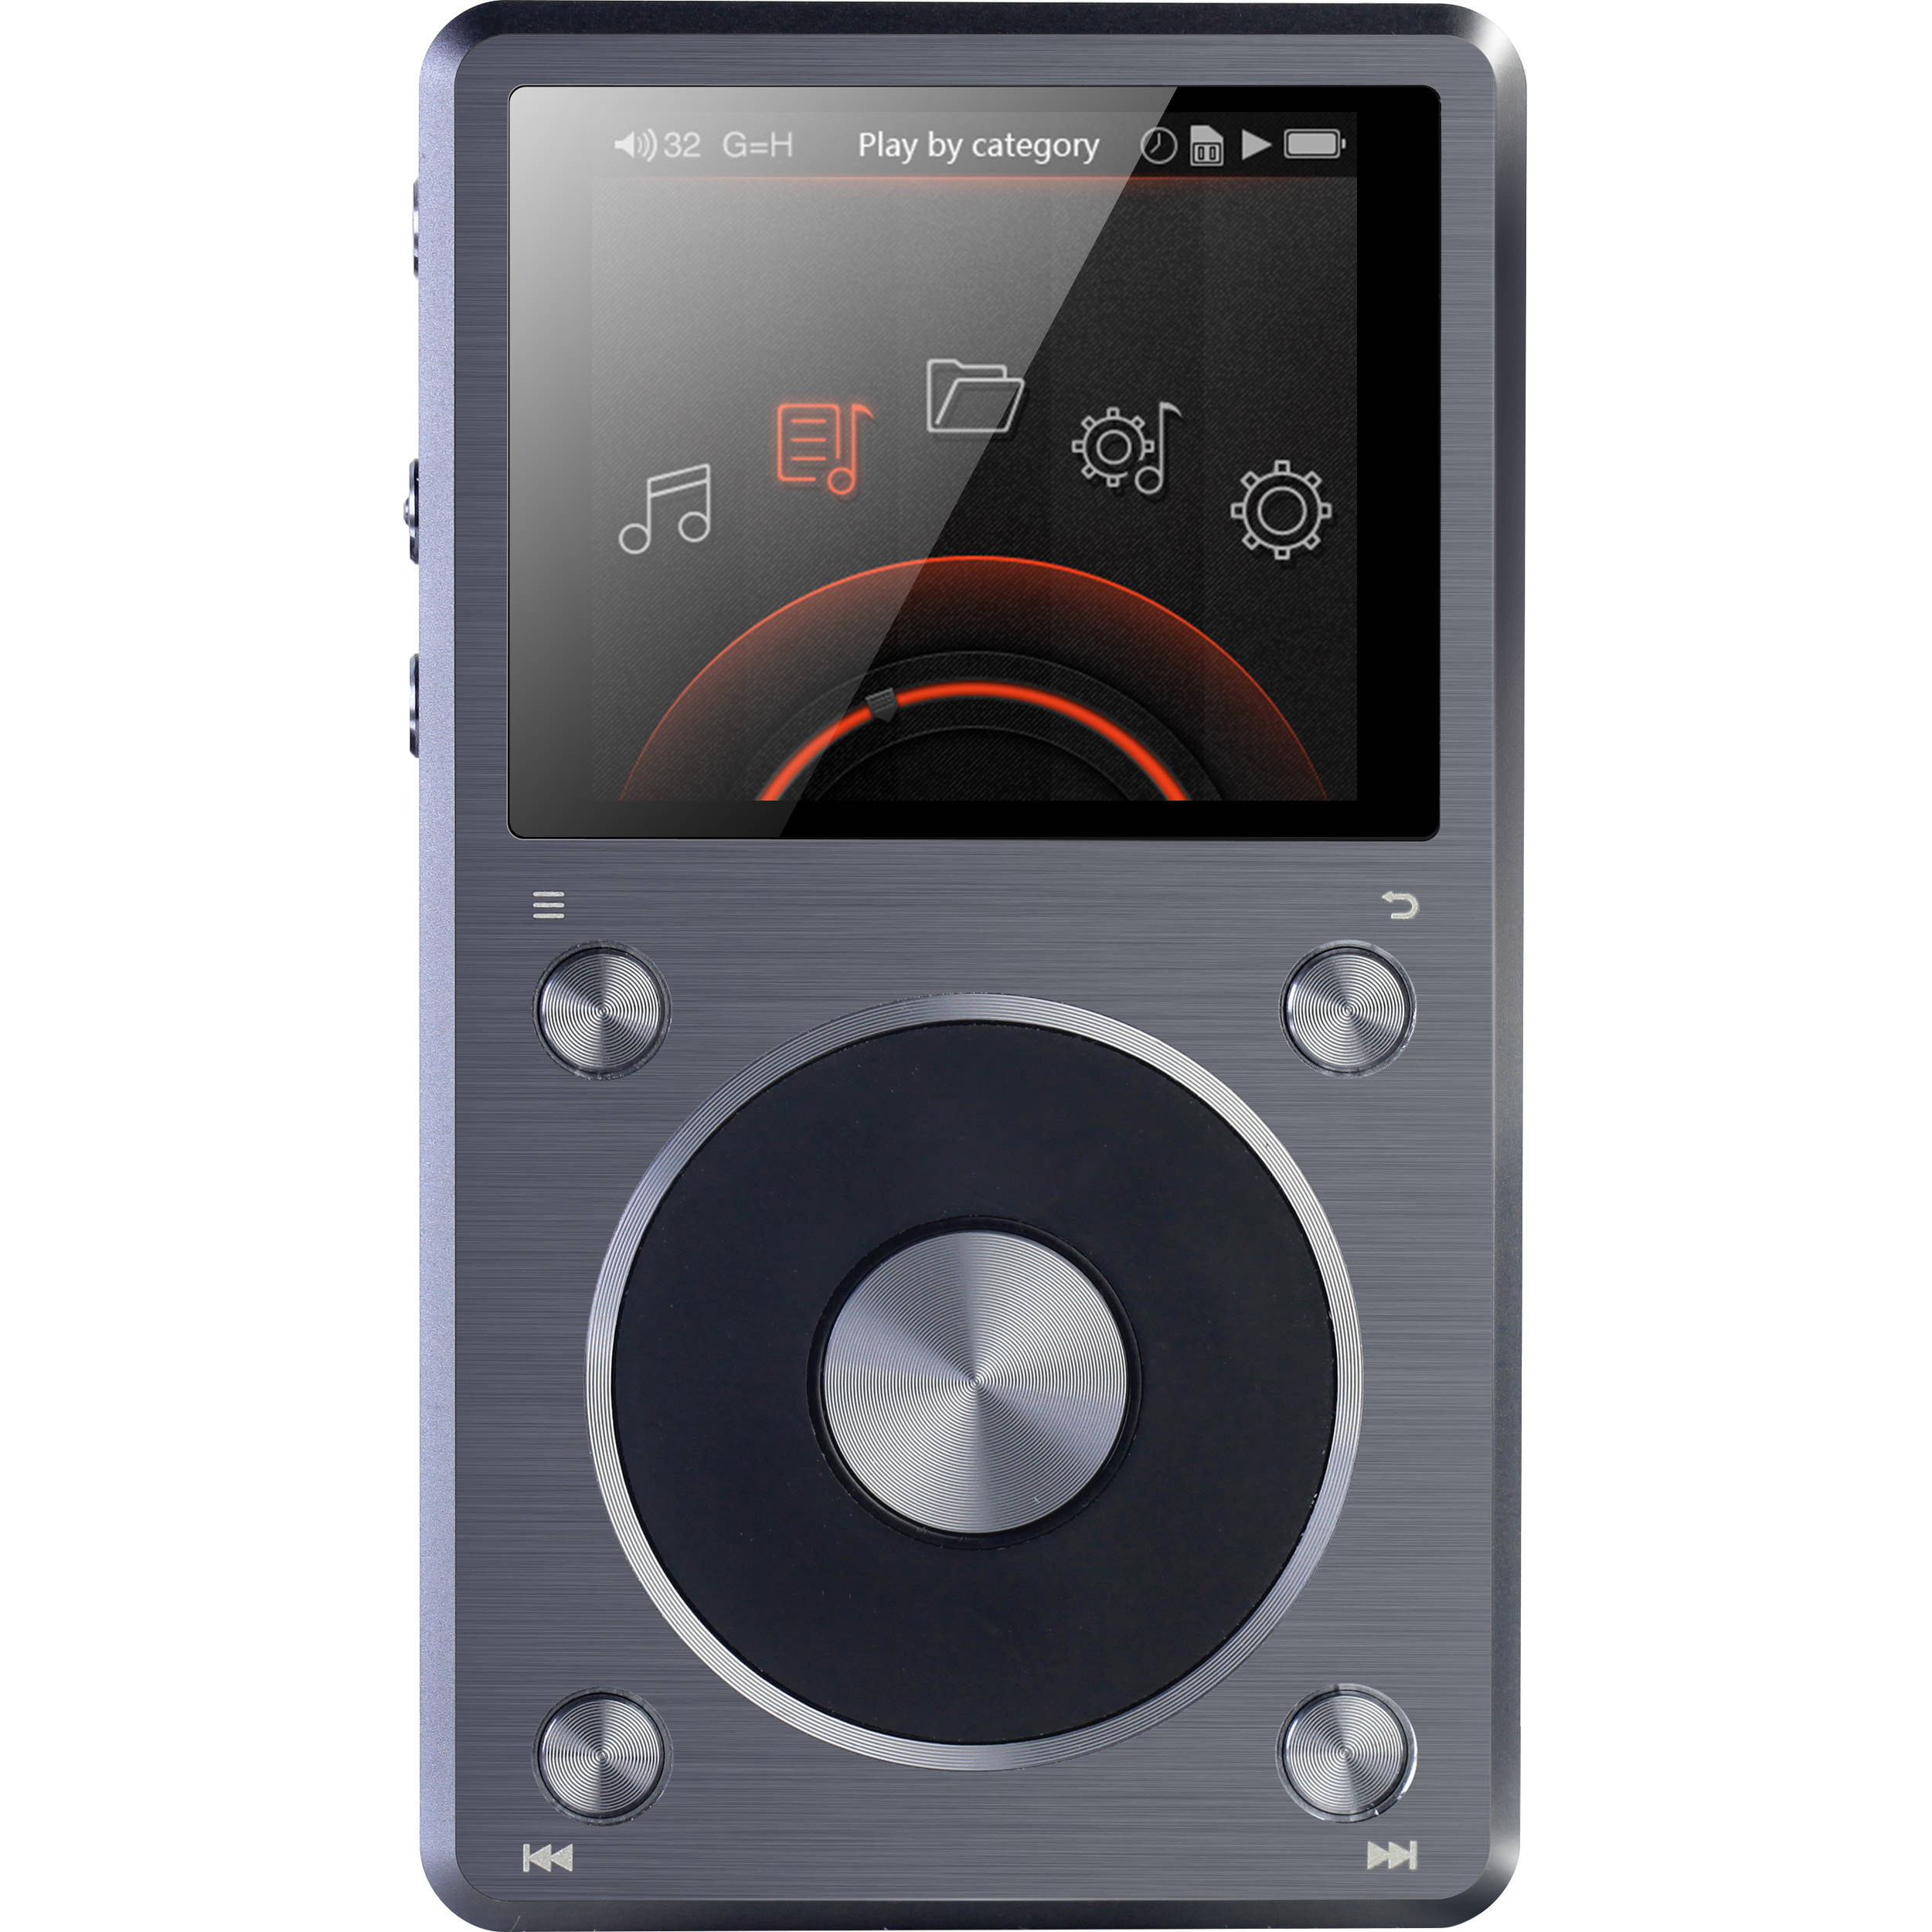 Mp  player   Android Apps on Google Play Amazon com  Creative ZEN Vision M    GB MP  and Video Player  Black   Home  Audio   Theater